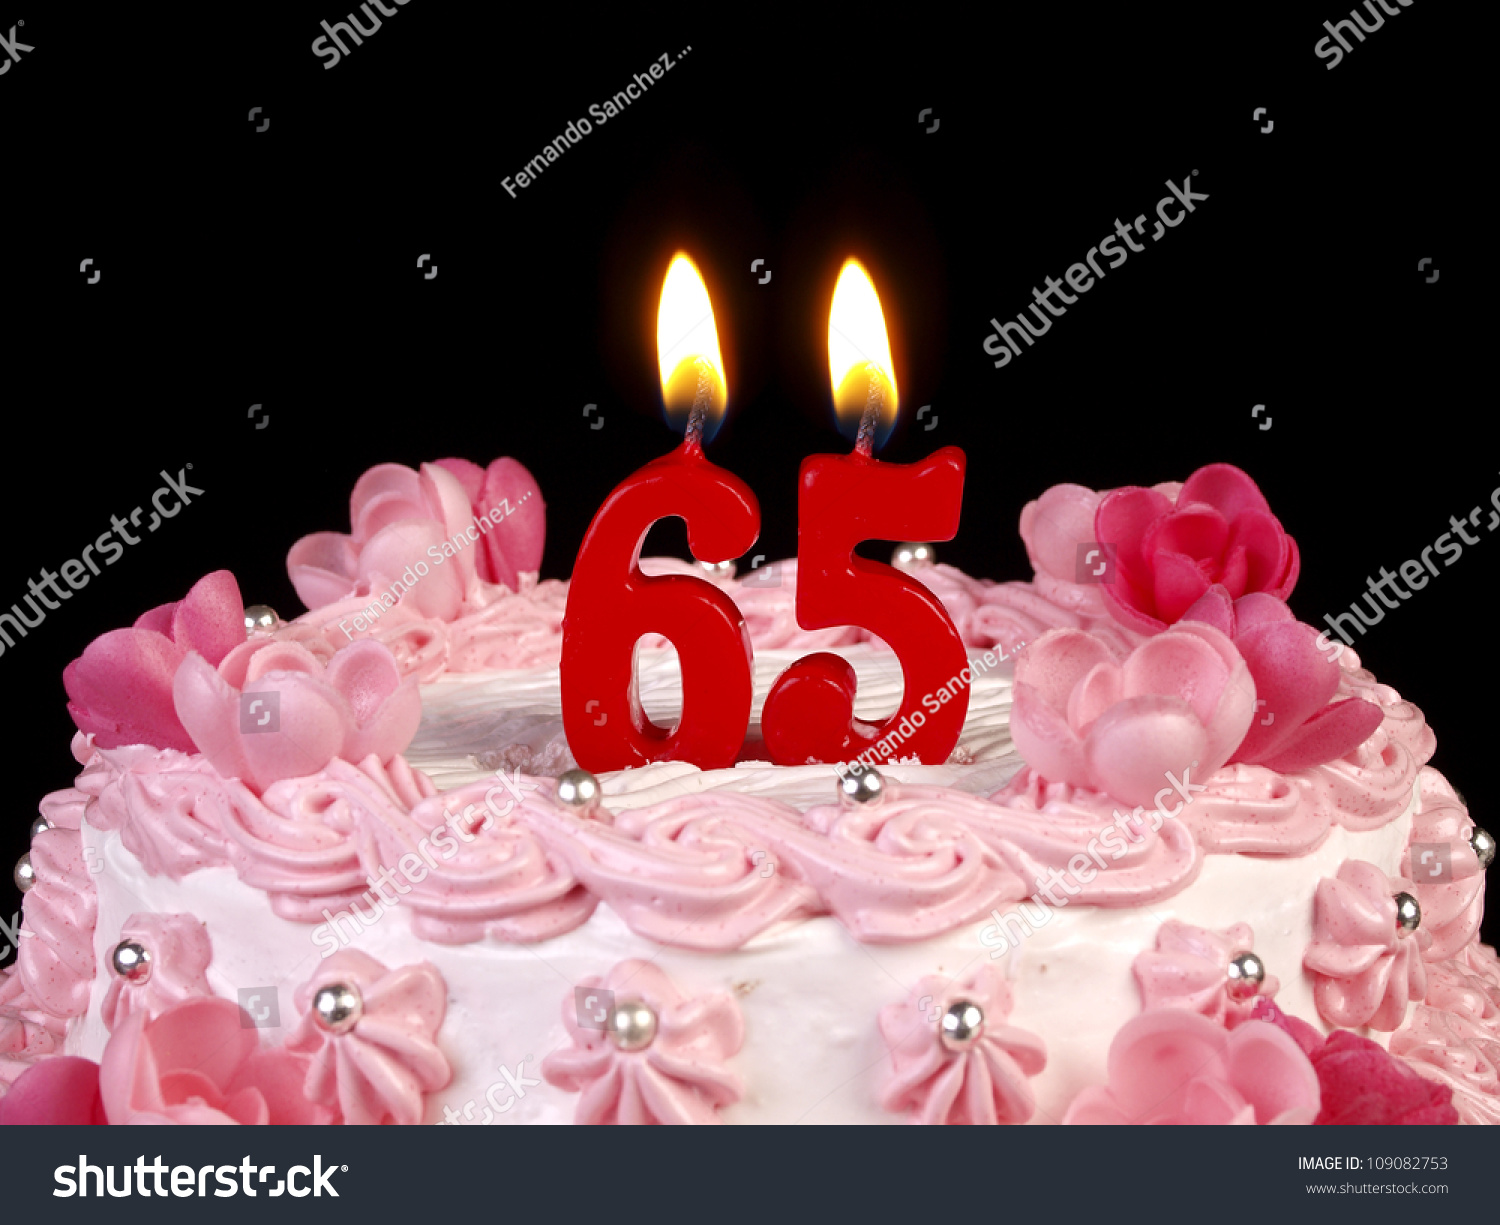 Birthday Cake With Red Candles Showing Nr 65 Stock Photo